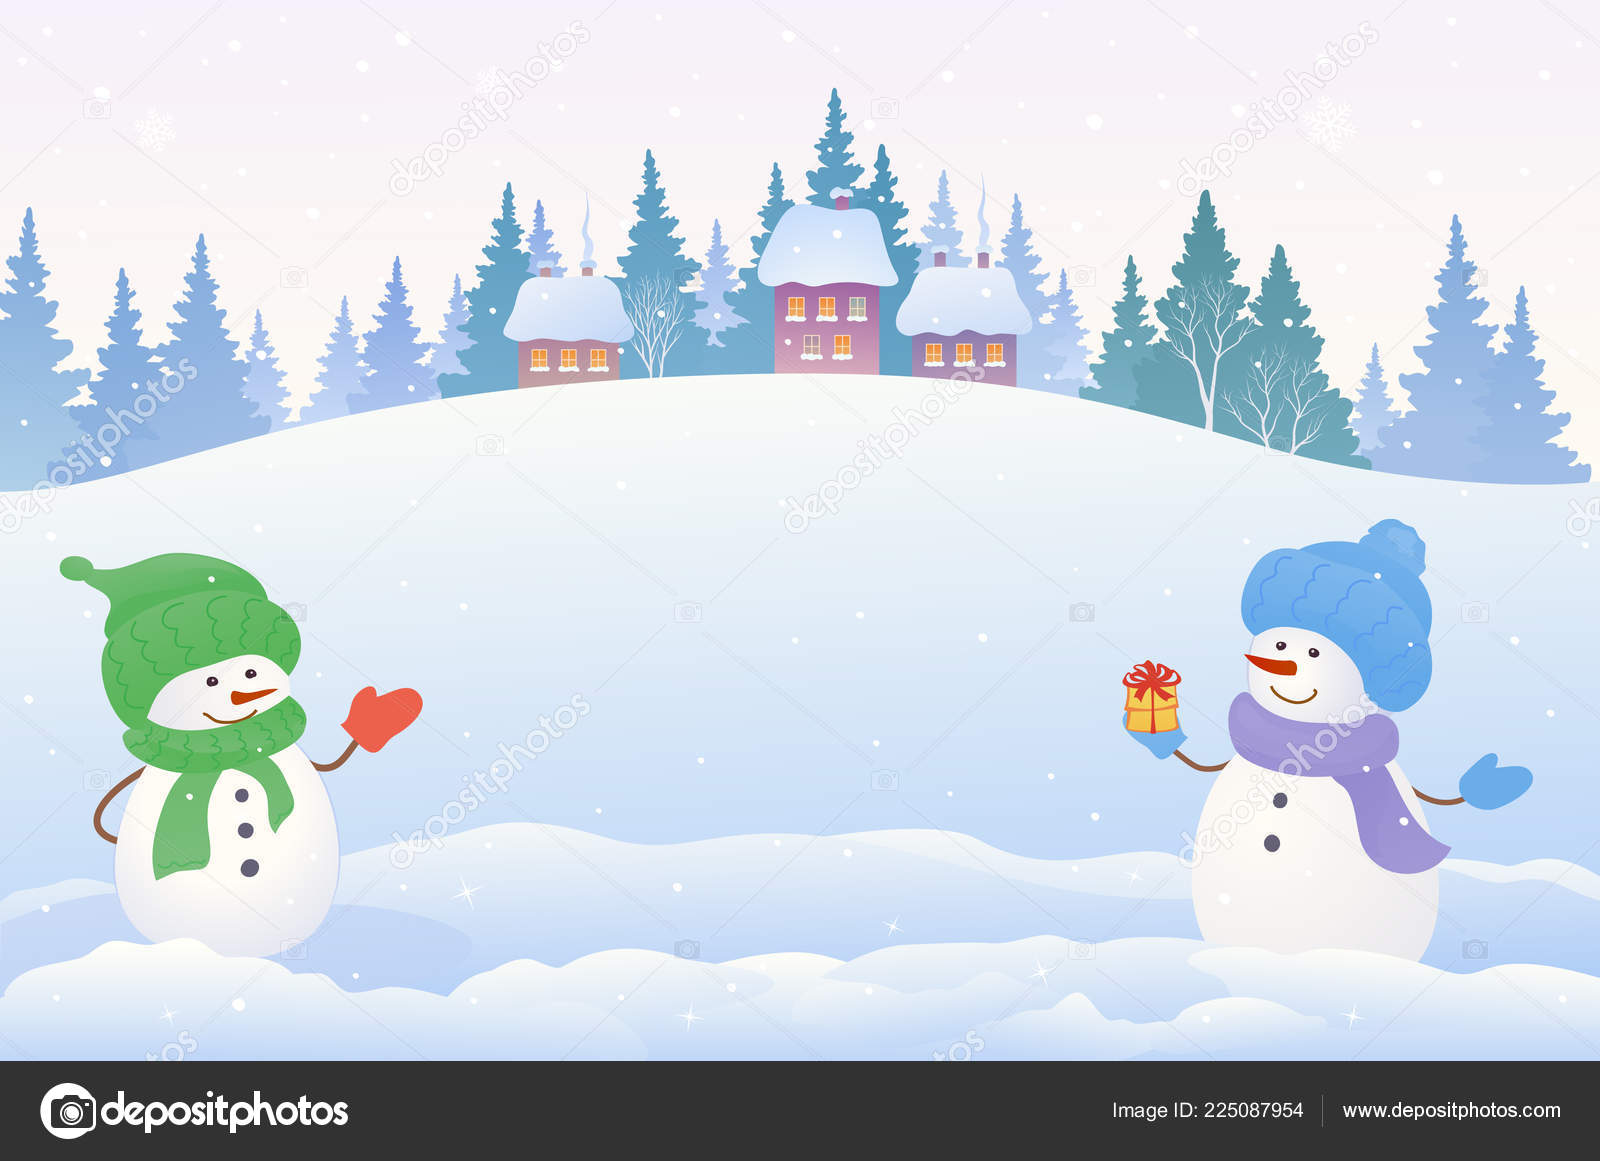 Christmas Scene Drawing.Clipart Snow Scenery Vector Cartoon Drawing Christmas